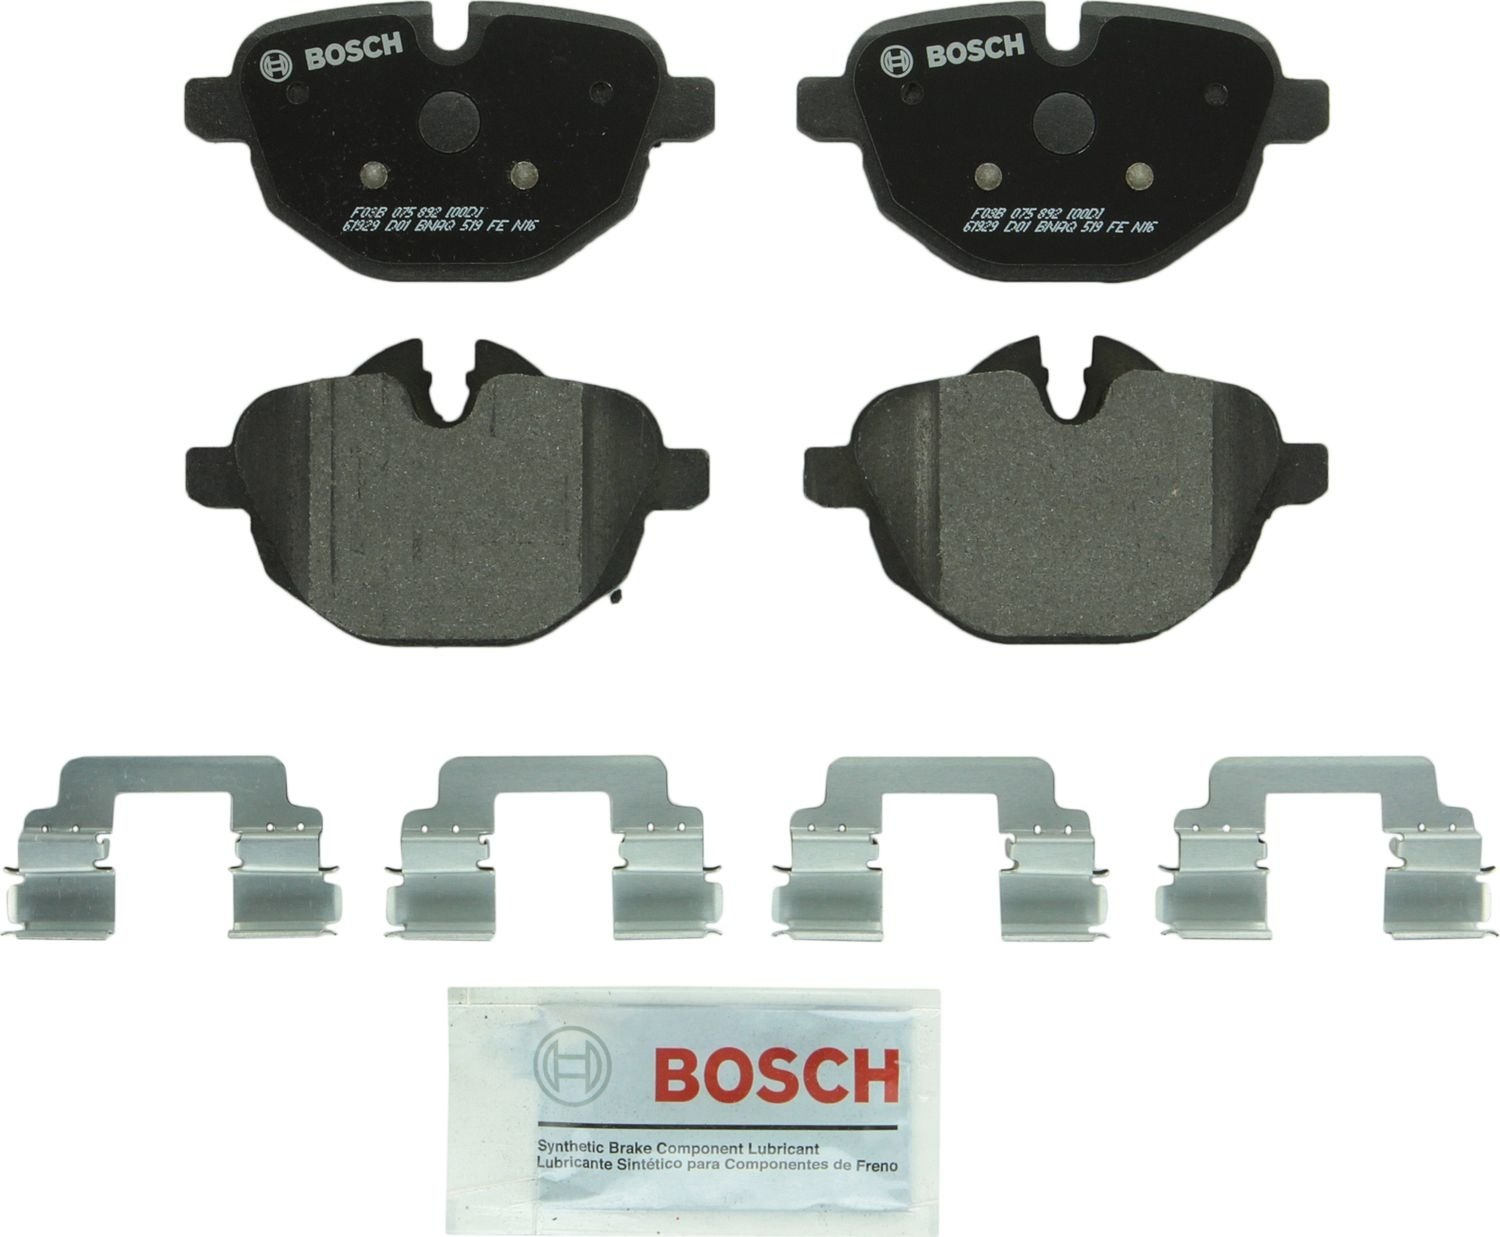 BOSCH BRAKE - Bosch Quietcast Pads W/ Hardware (Rear) - BQC BP1473